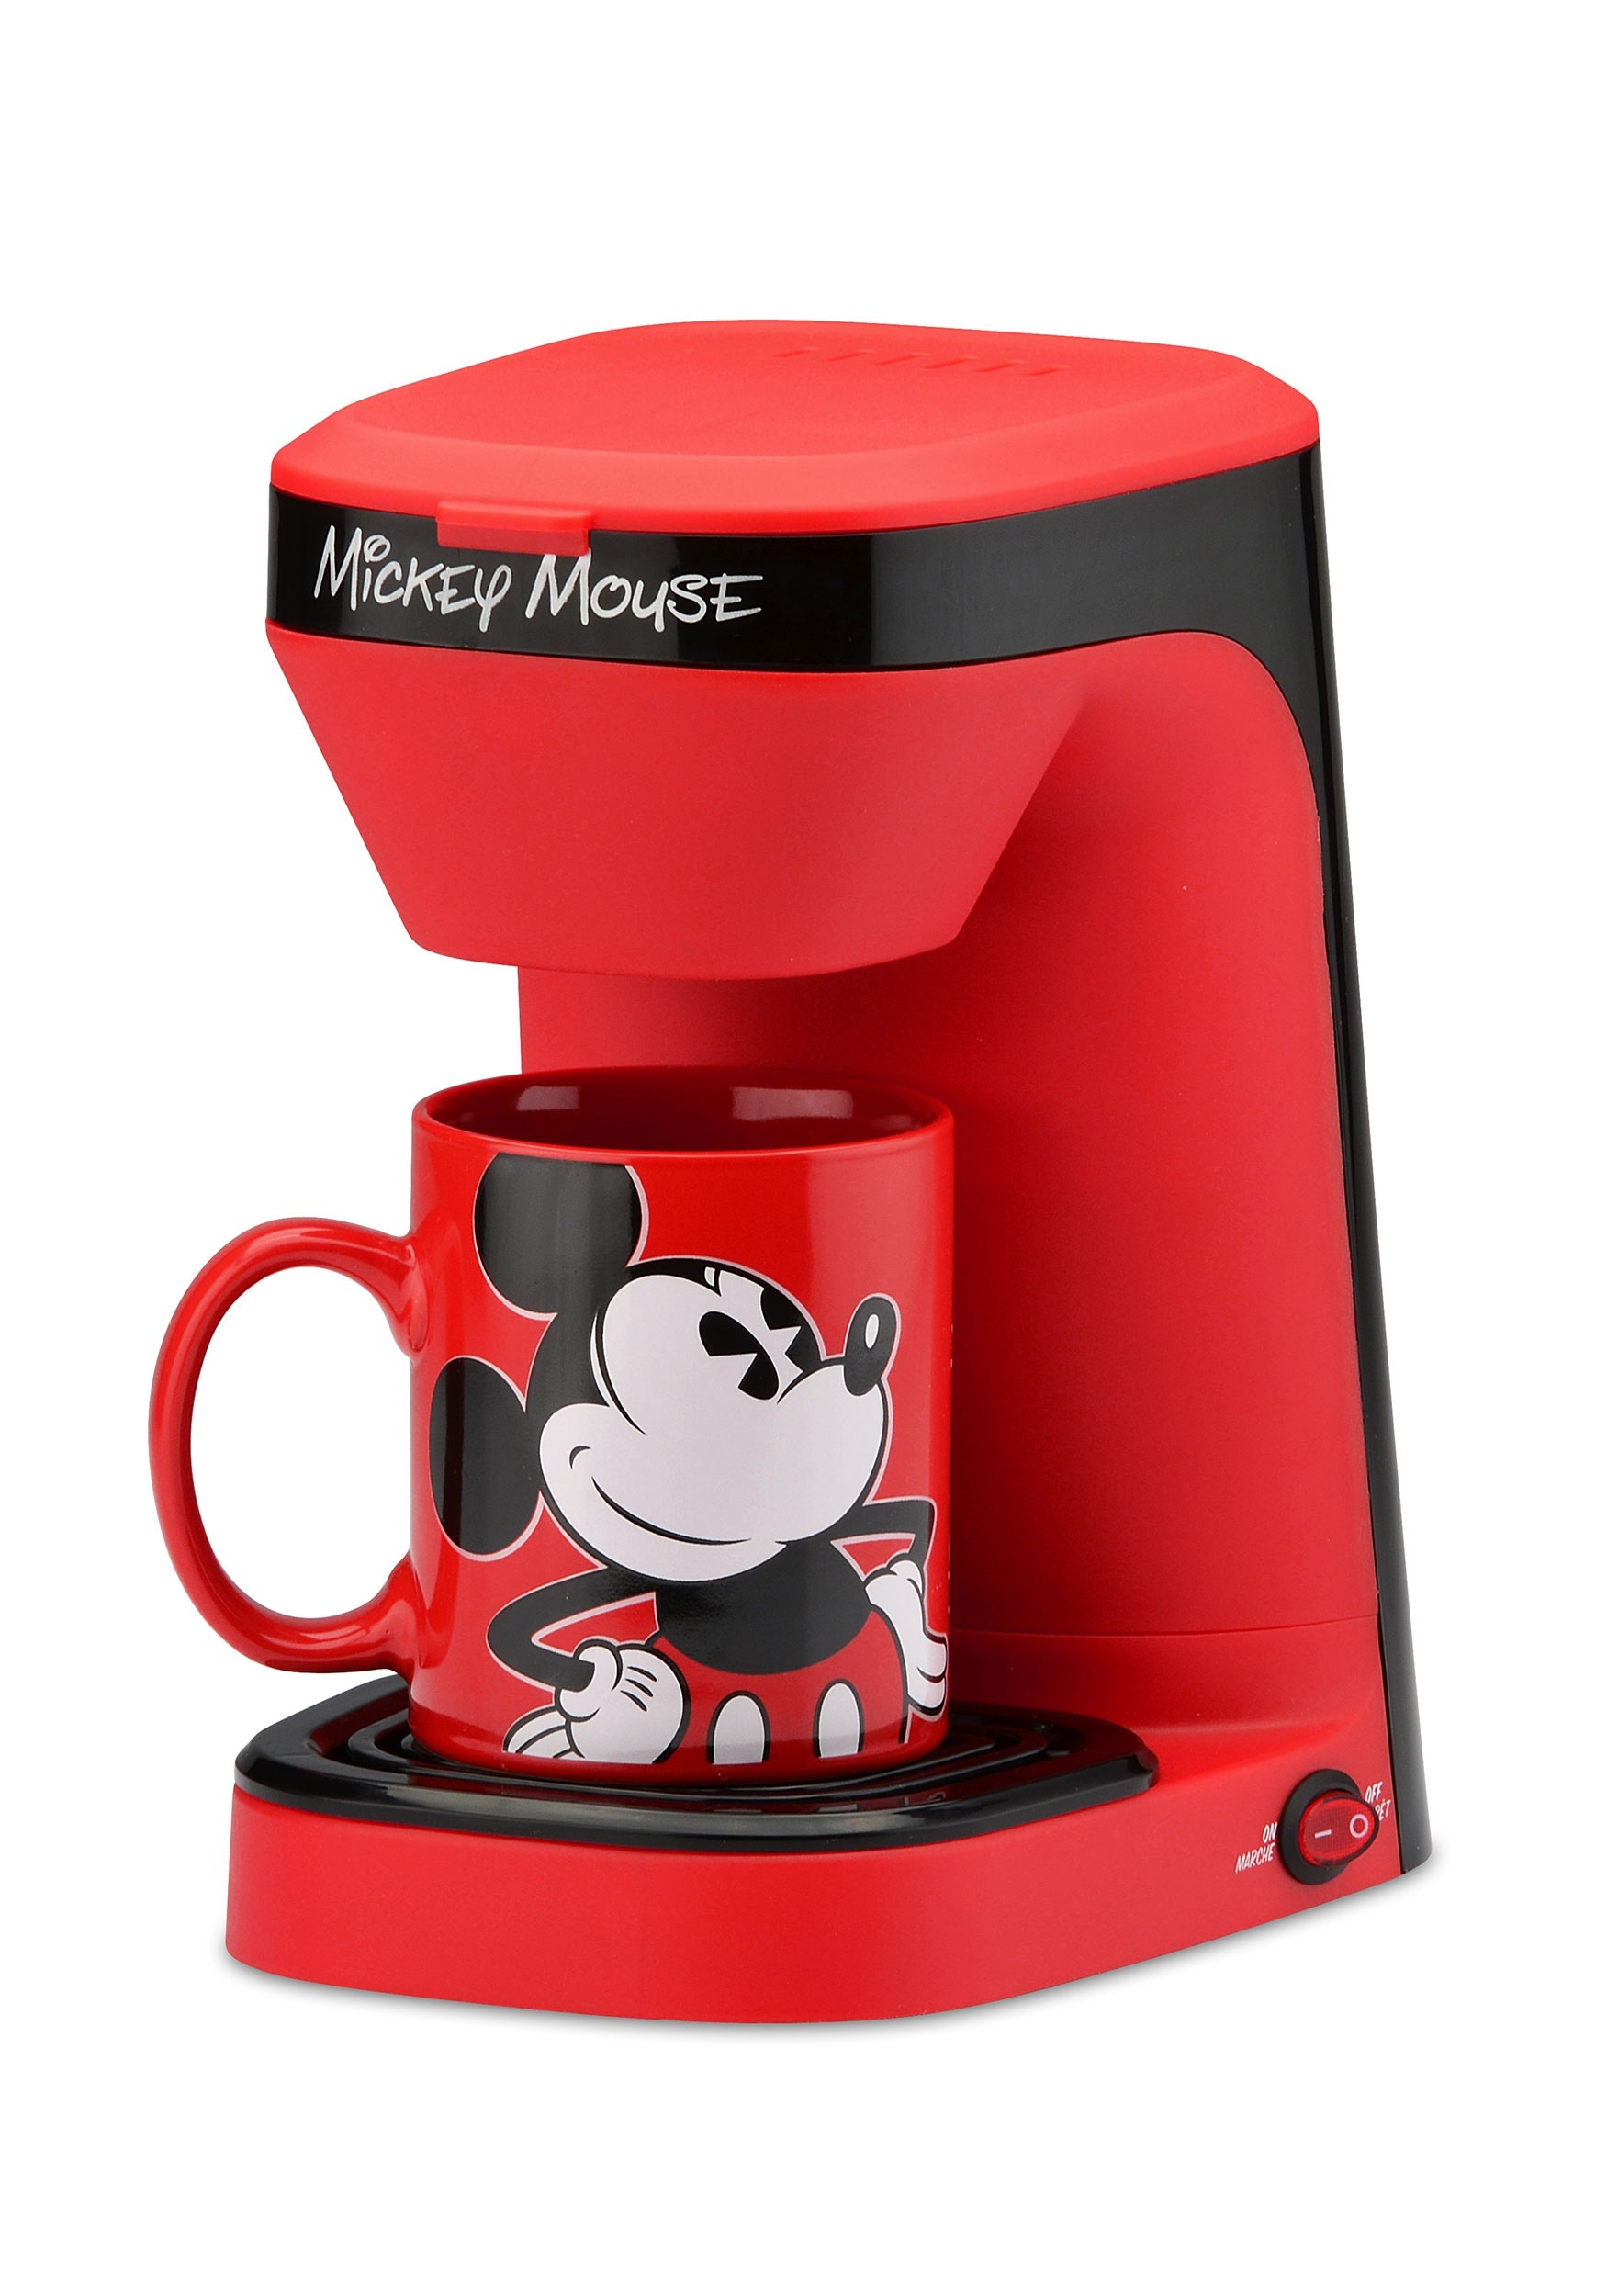 Disney Mickey Mouse Single Brew Coffee Maker